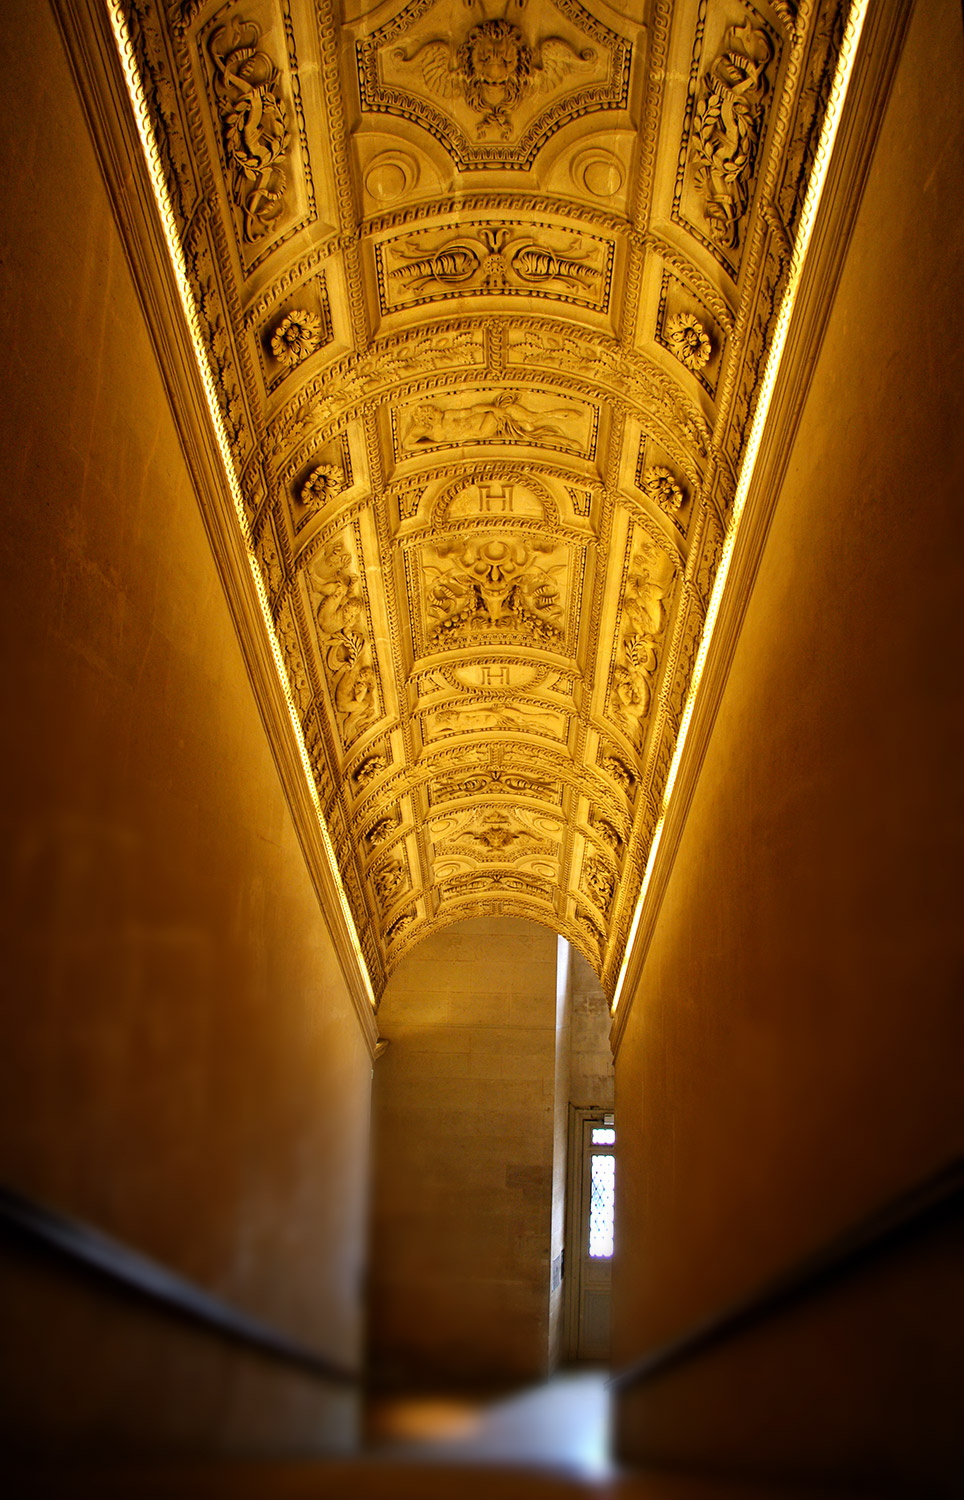 The Louvre hallway in Paris France